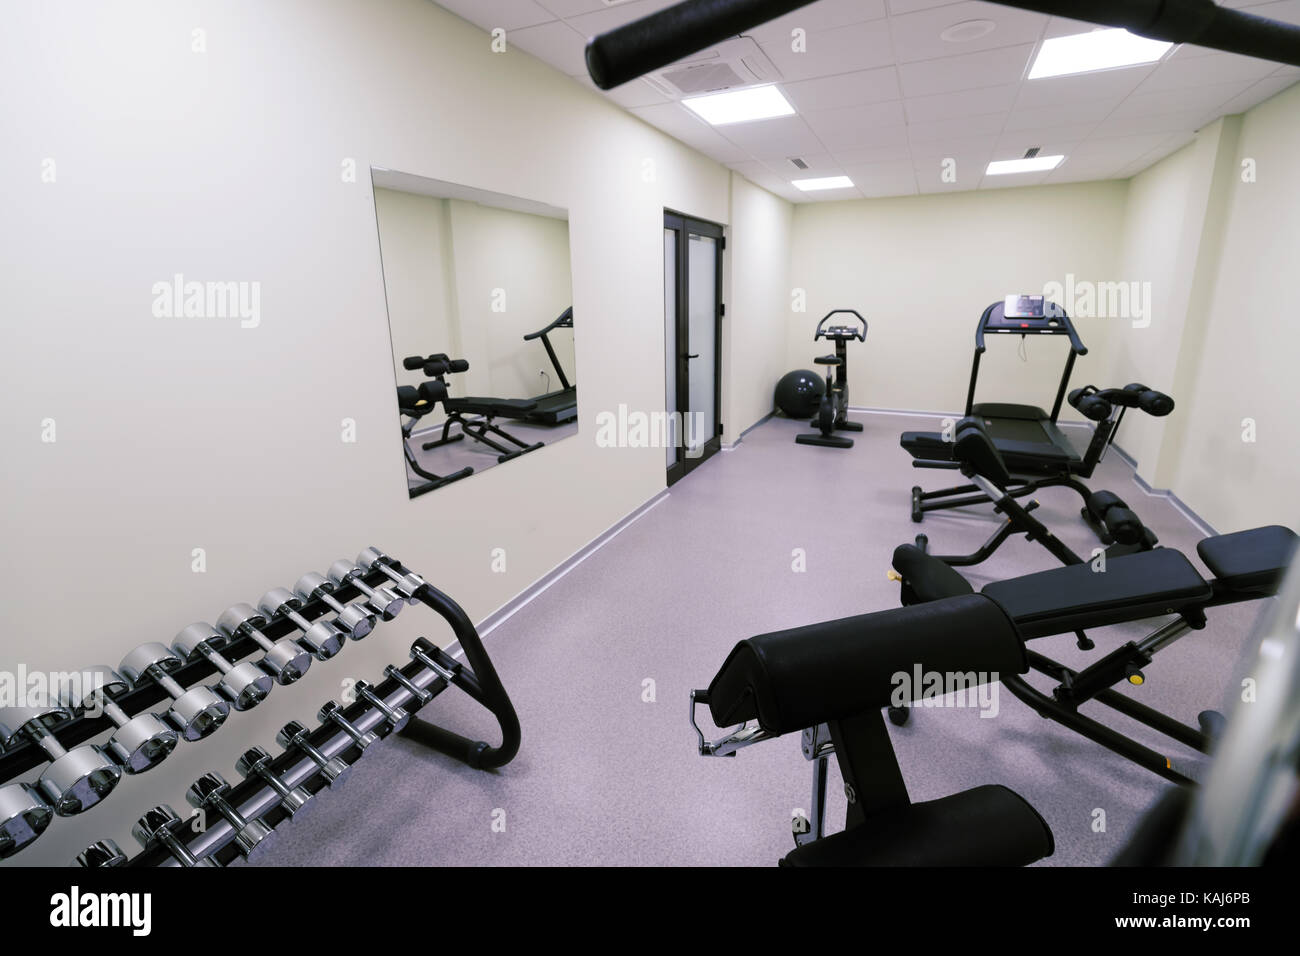 Residential Workout Room Stock Photos & Residential Workout Room ...